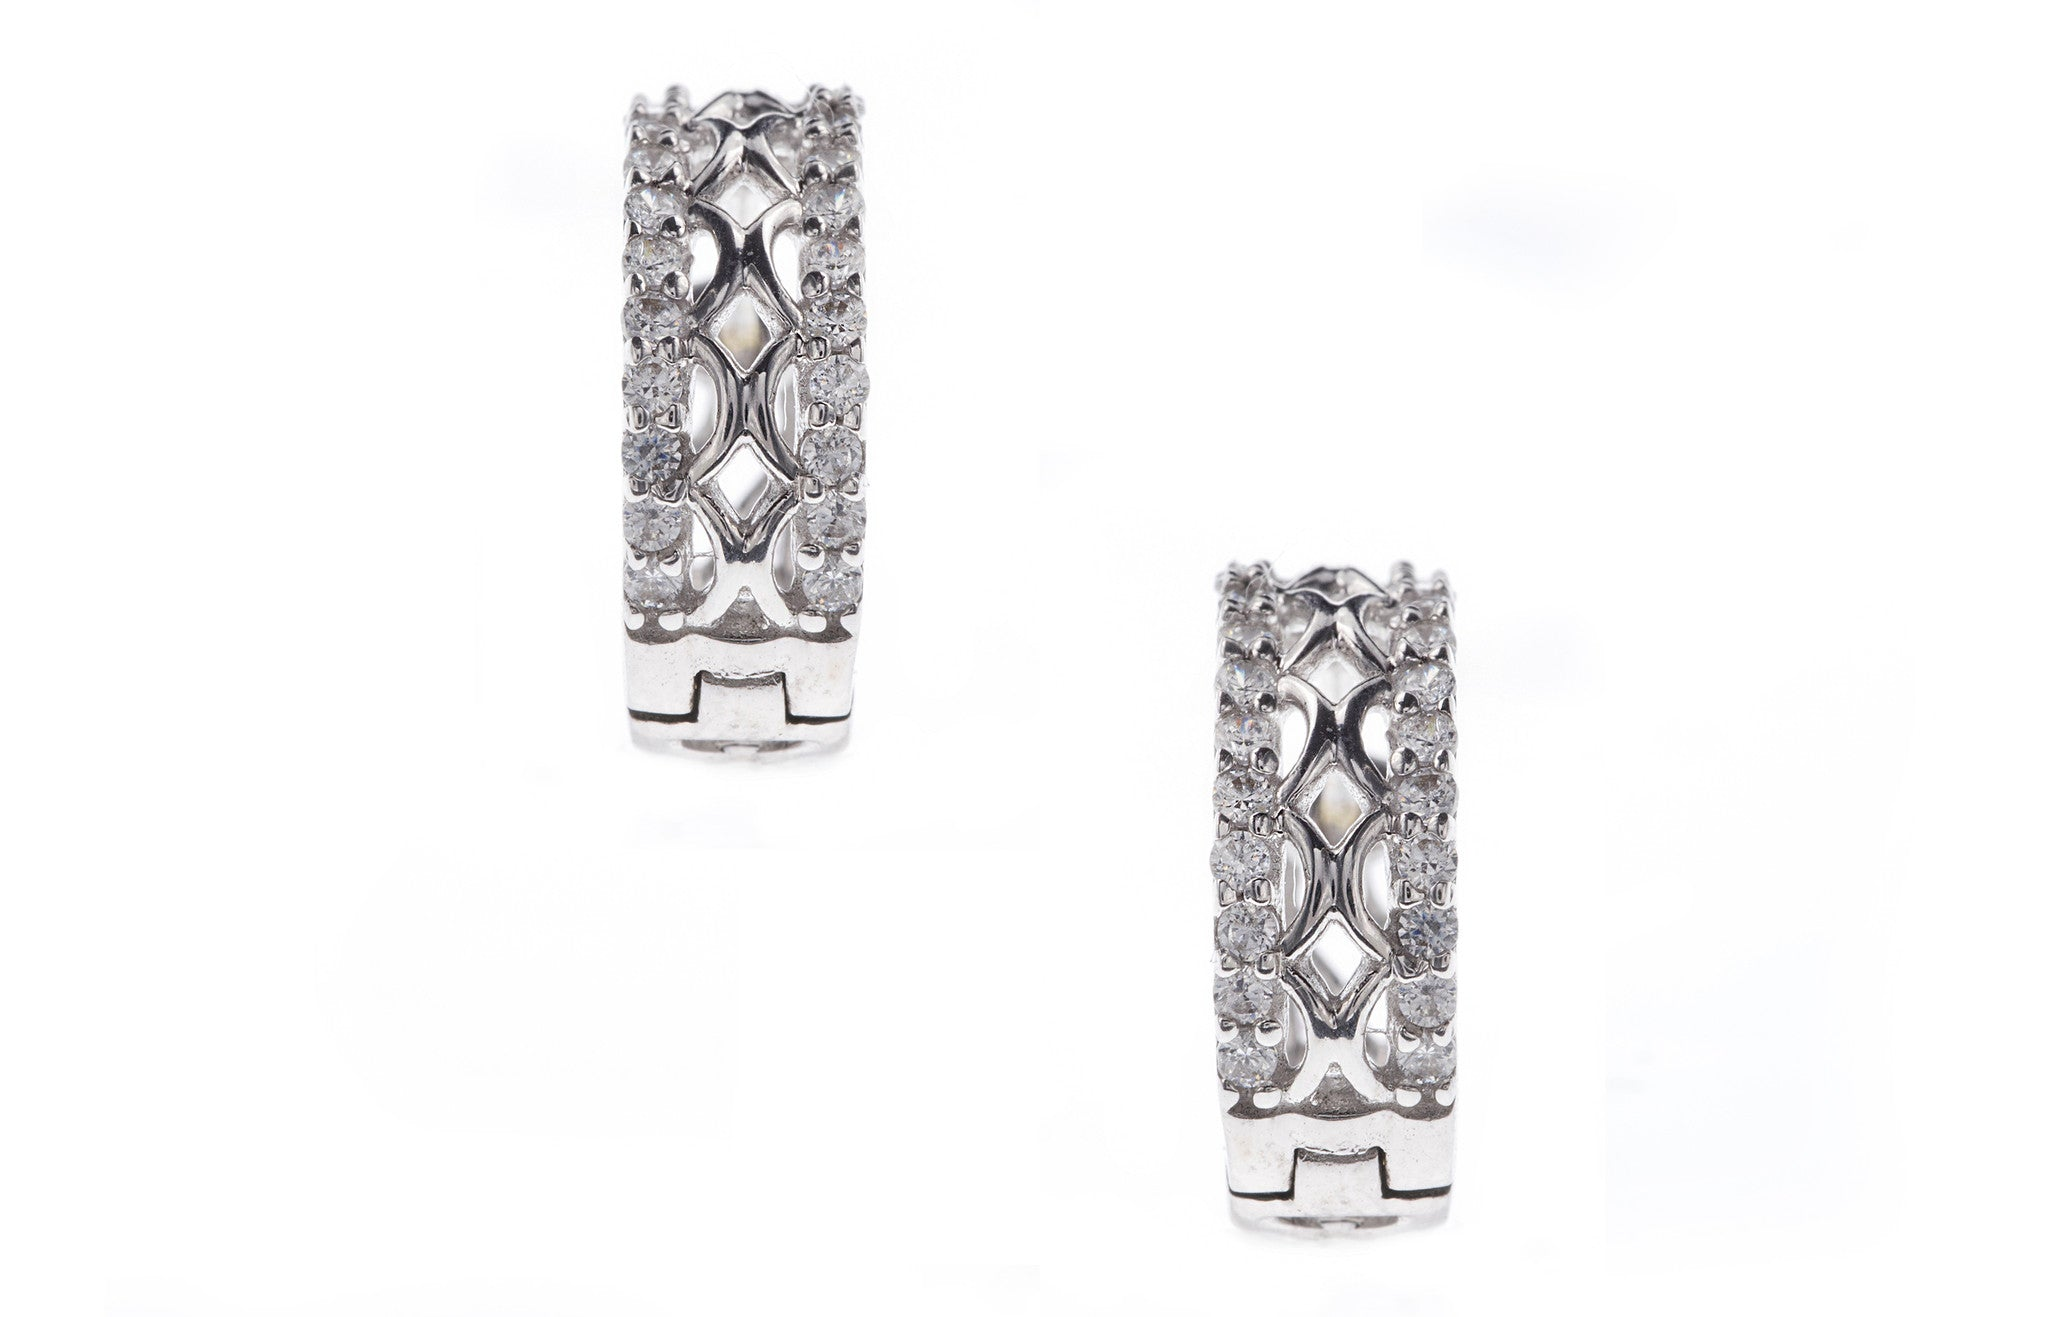 18ct White Gold Earrings set with Cubic Zirconia stones (G2867), Minar Jewellers - 2